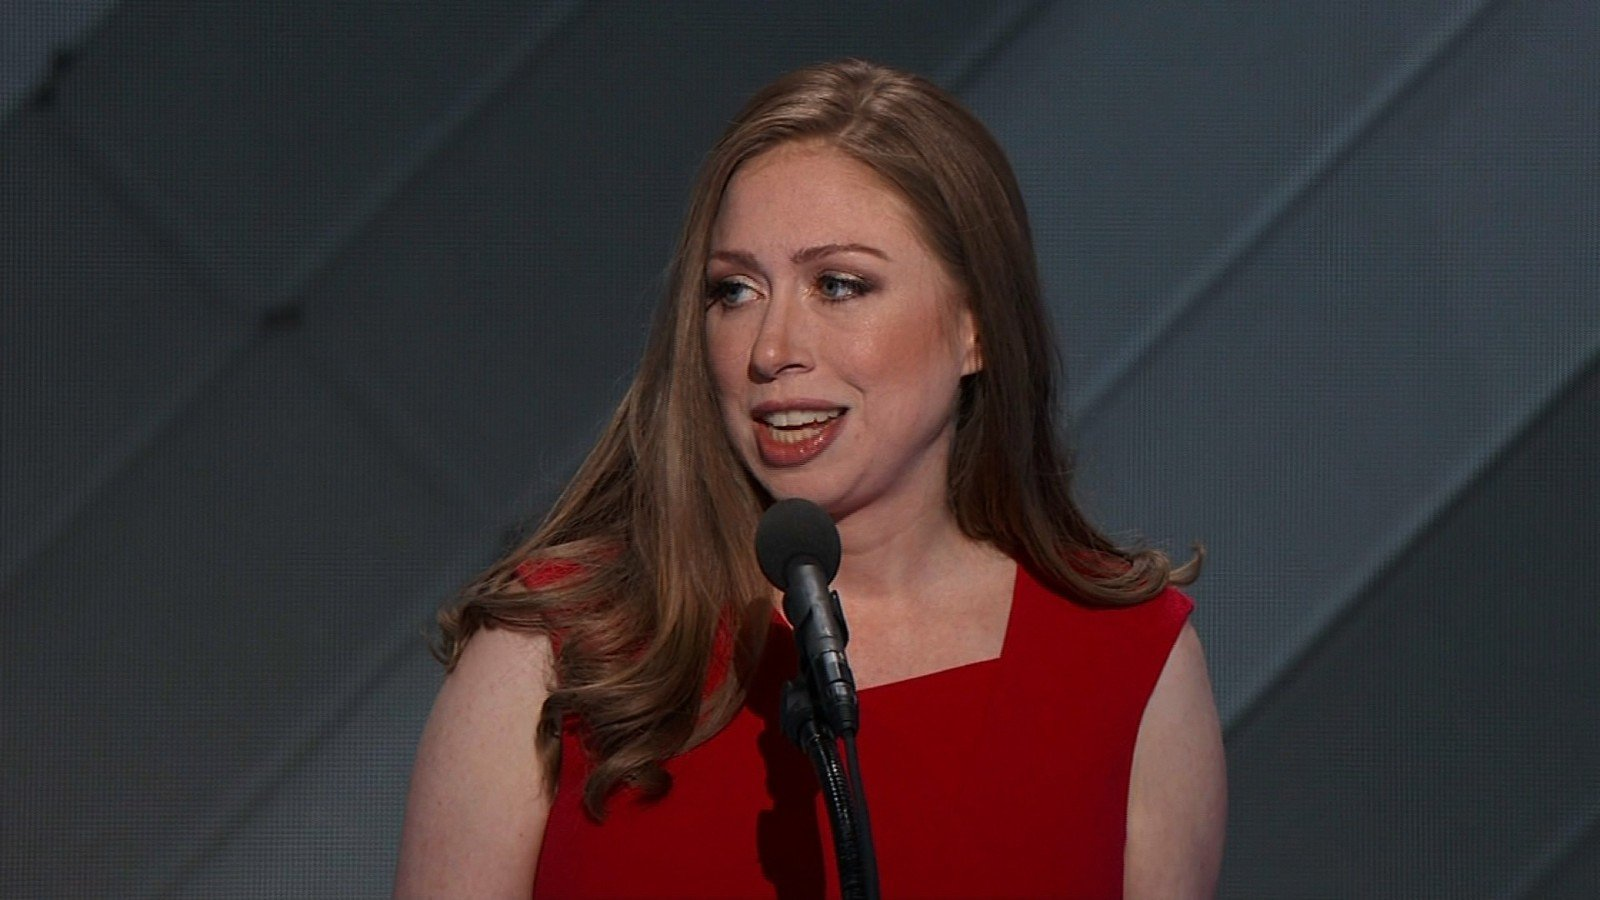 WATCH ABC Allows Chelsea Clinton to be MeToo Advocate No Mention of Bill